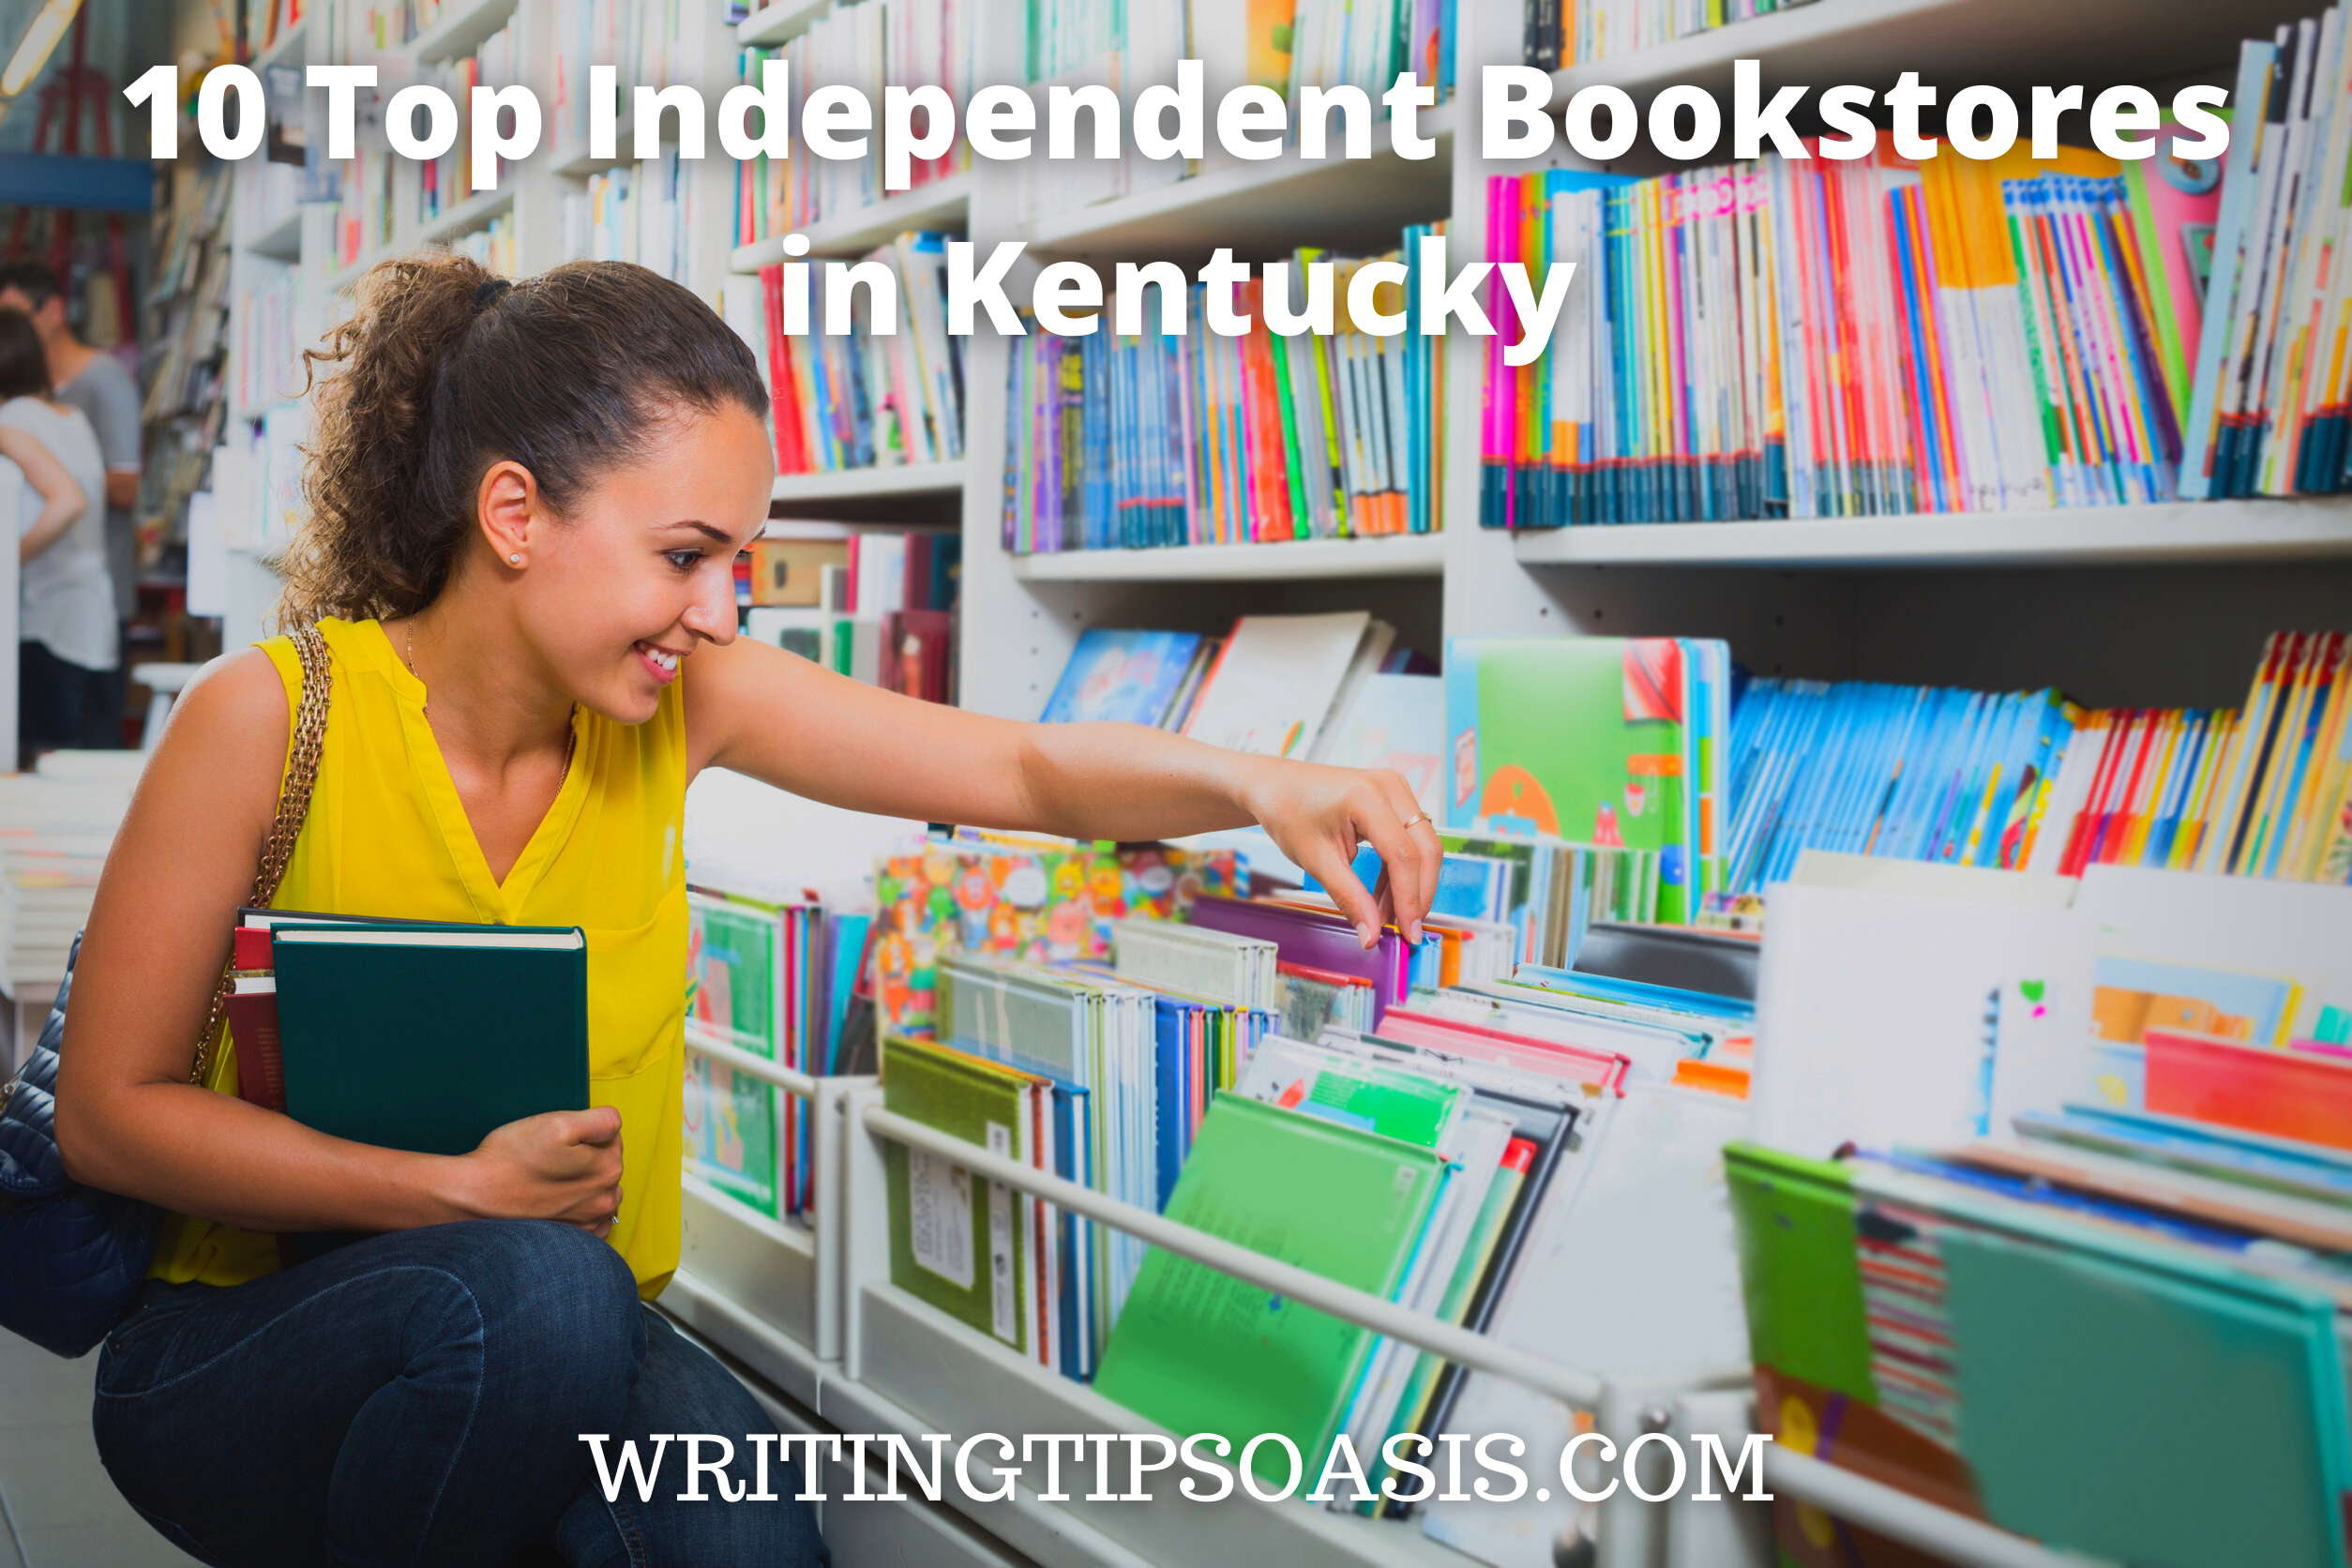 independent bookstores in Kentucky